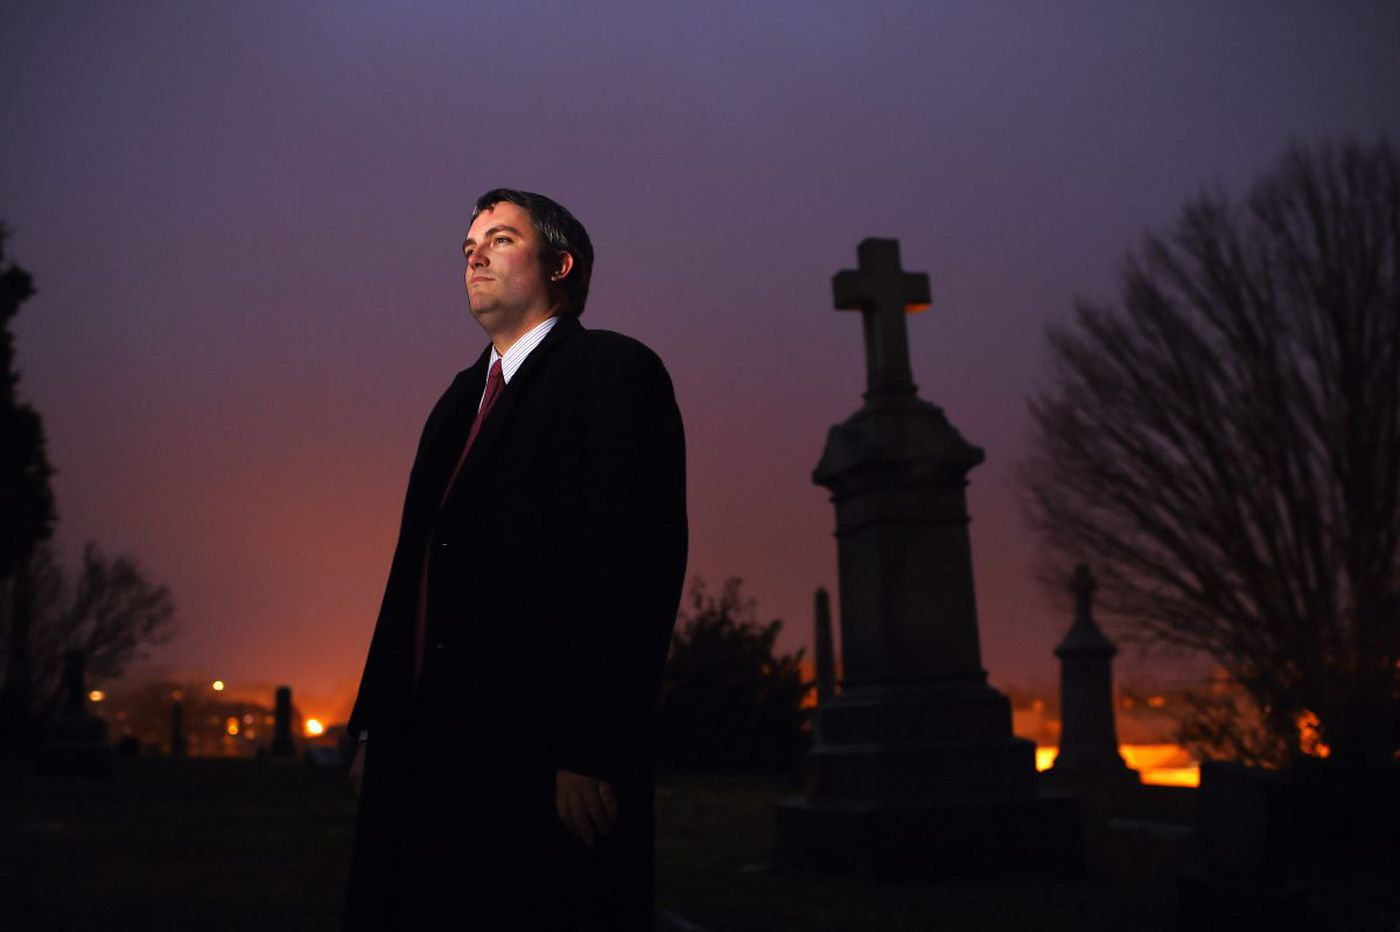 Law clerk by day, ghost hunter by night, now Trump's judicial nominee